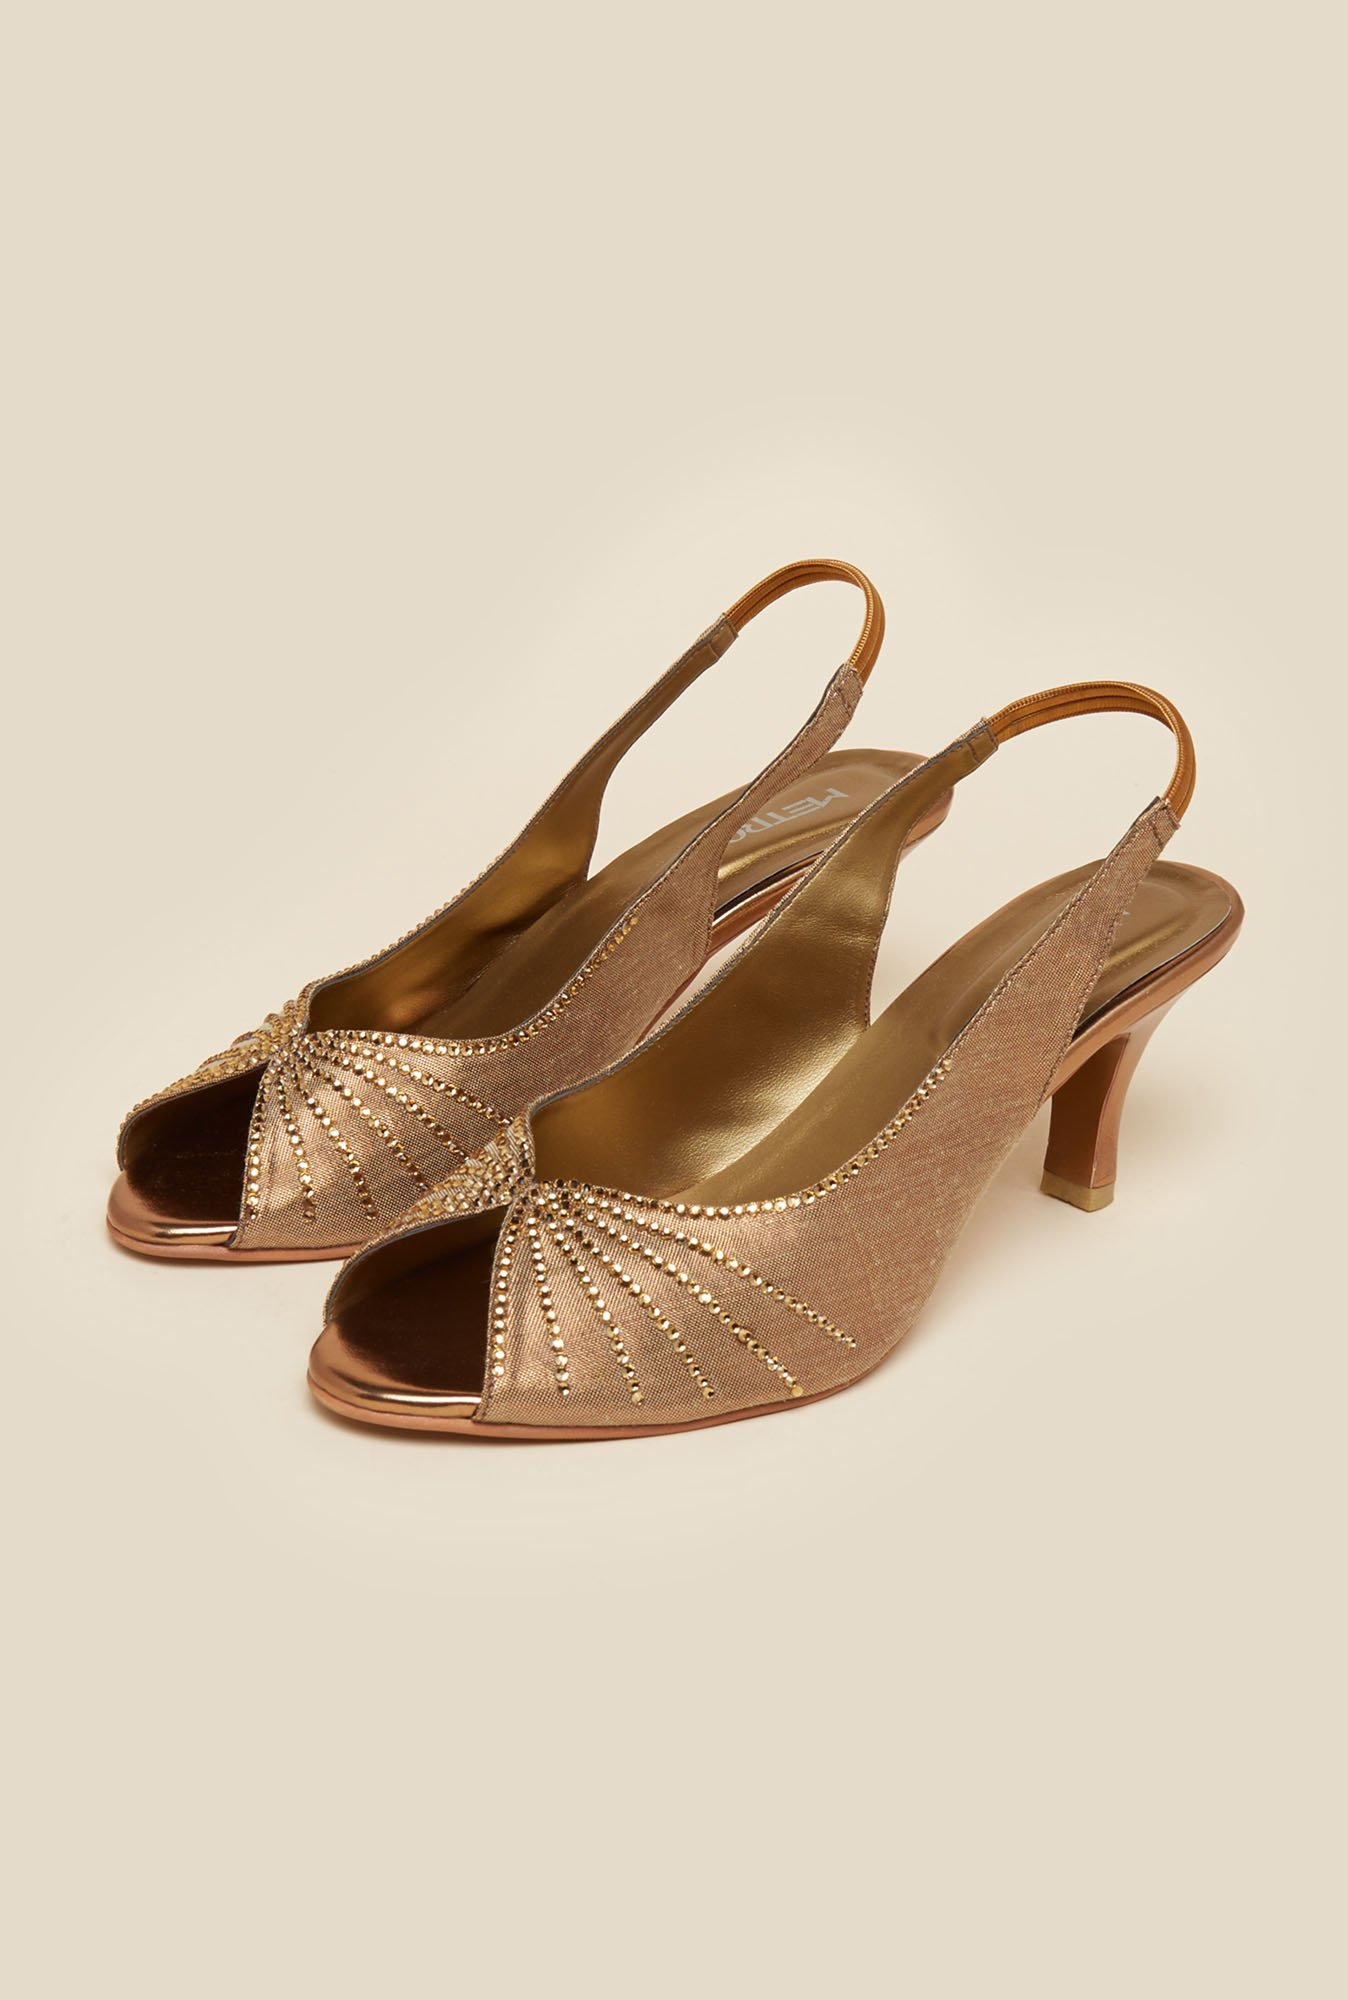 Metro Antique Gold Peep Toe Sandals